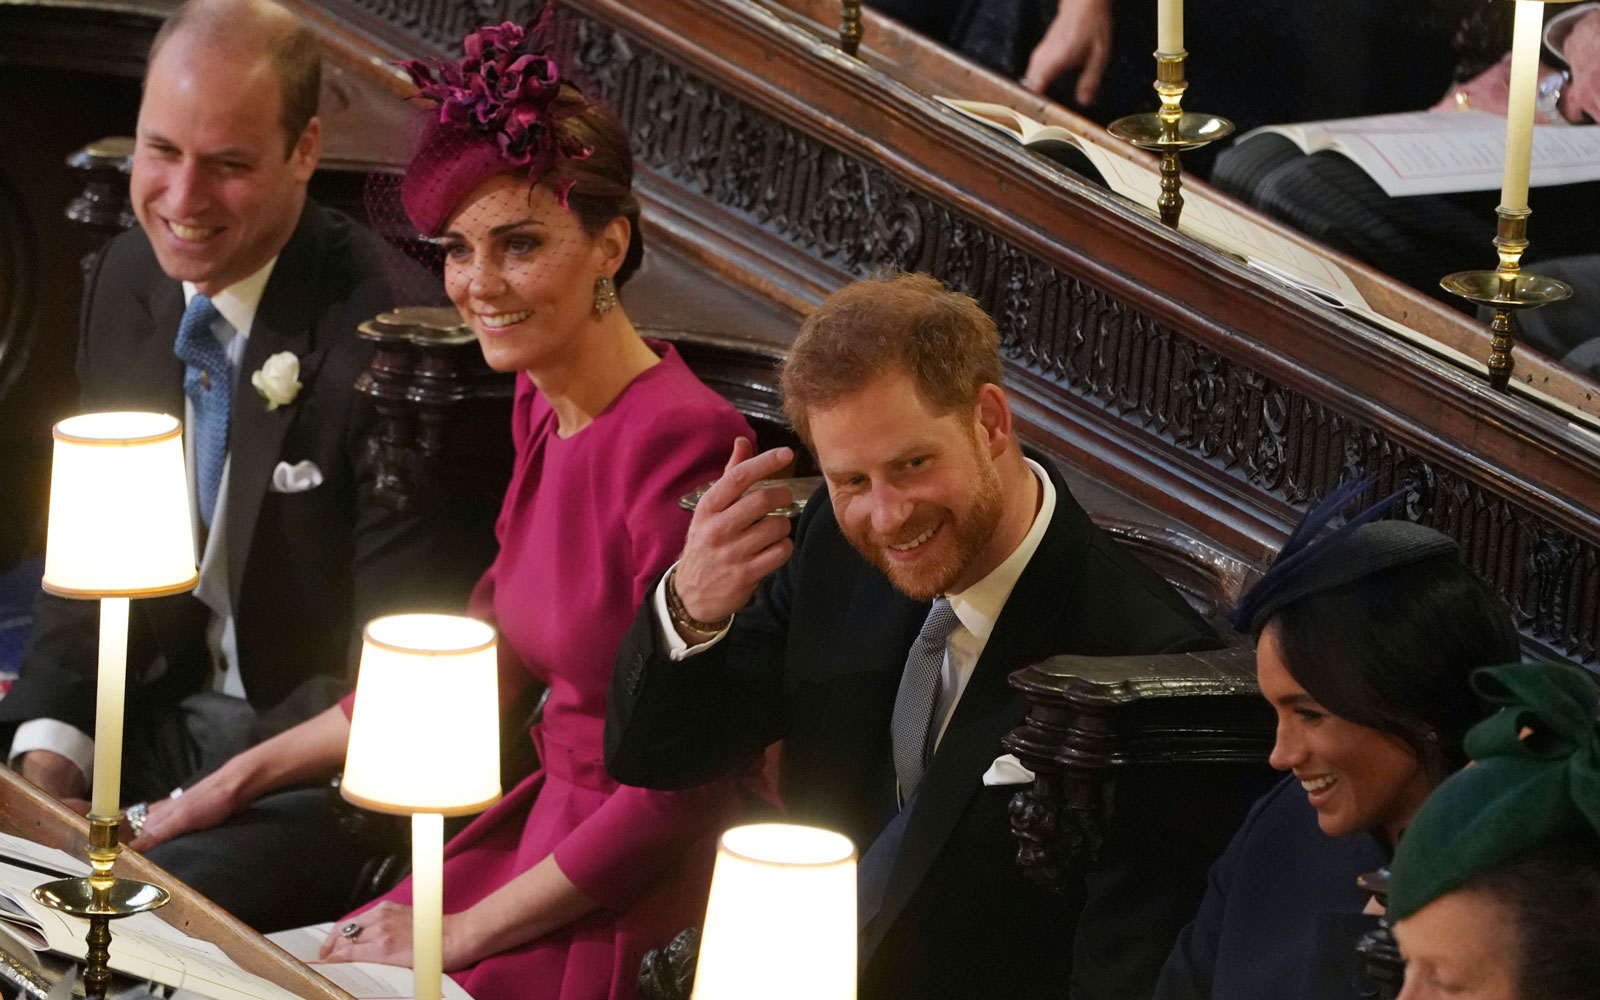 Prince William, Duke of Cambridge, Catherine, Duchess of Cambridge, Prince Harry, Duke of Sussex, Meghan, Duchess of Sussex and Princess Anne, Princess Royal, react during the wedding ceremony of Princess Eugenie of York to Jack Brooksbank.